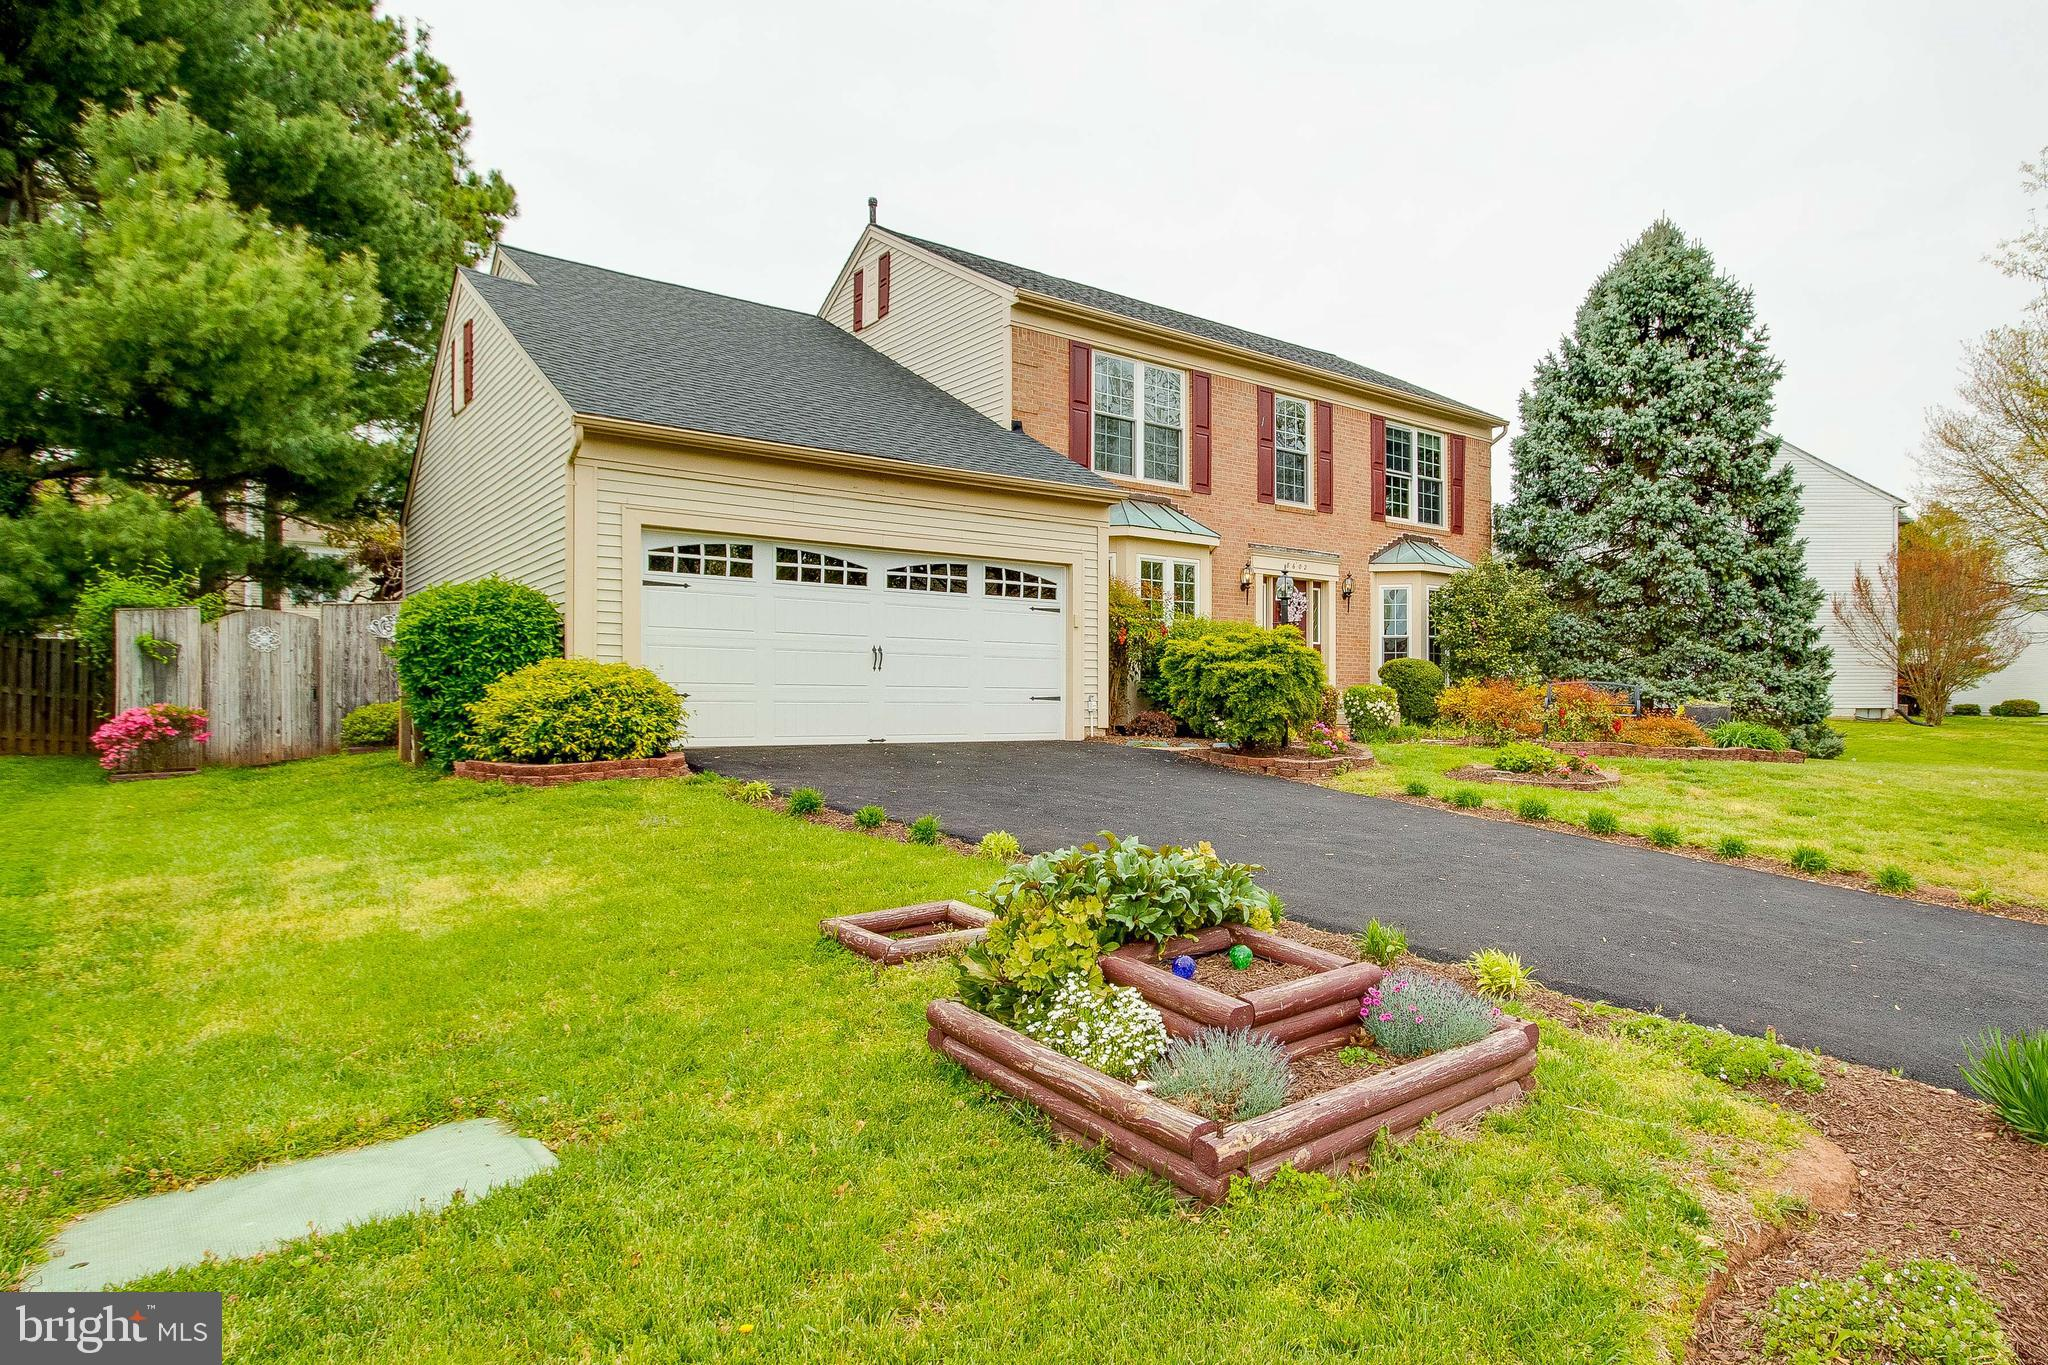 Beautiful home in the heart of Old Town Manassas! NO HOA** Over  3,500 sqft of living area spread out on 3 levels**Traditional brick front, fenced in back yard, trex deck off the breakfast room**Newer roof, Windows, HVAC & H2O**Updated kitchen, ceramic tile flooring, stainless steel appliances, granite counter tops, light fixtures**Wood burning fireplace @ family room**office/library off living room** Large master bedroom w/luxury master bath, and spacious secondary bedrooms***(jets on master tub as is) Fully finished basement with a den, full bathroom, hobby room and rec room**Convenient location to Old Town VRE, shopping, schools and commuter routes**Pride of ownership**Must see**